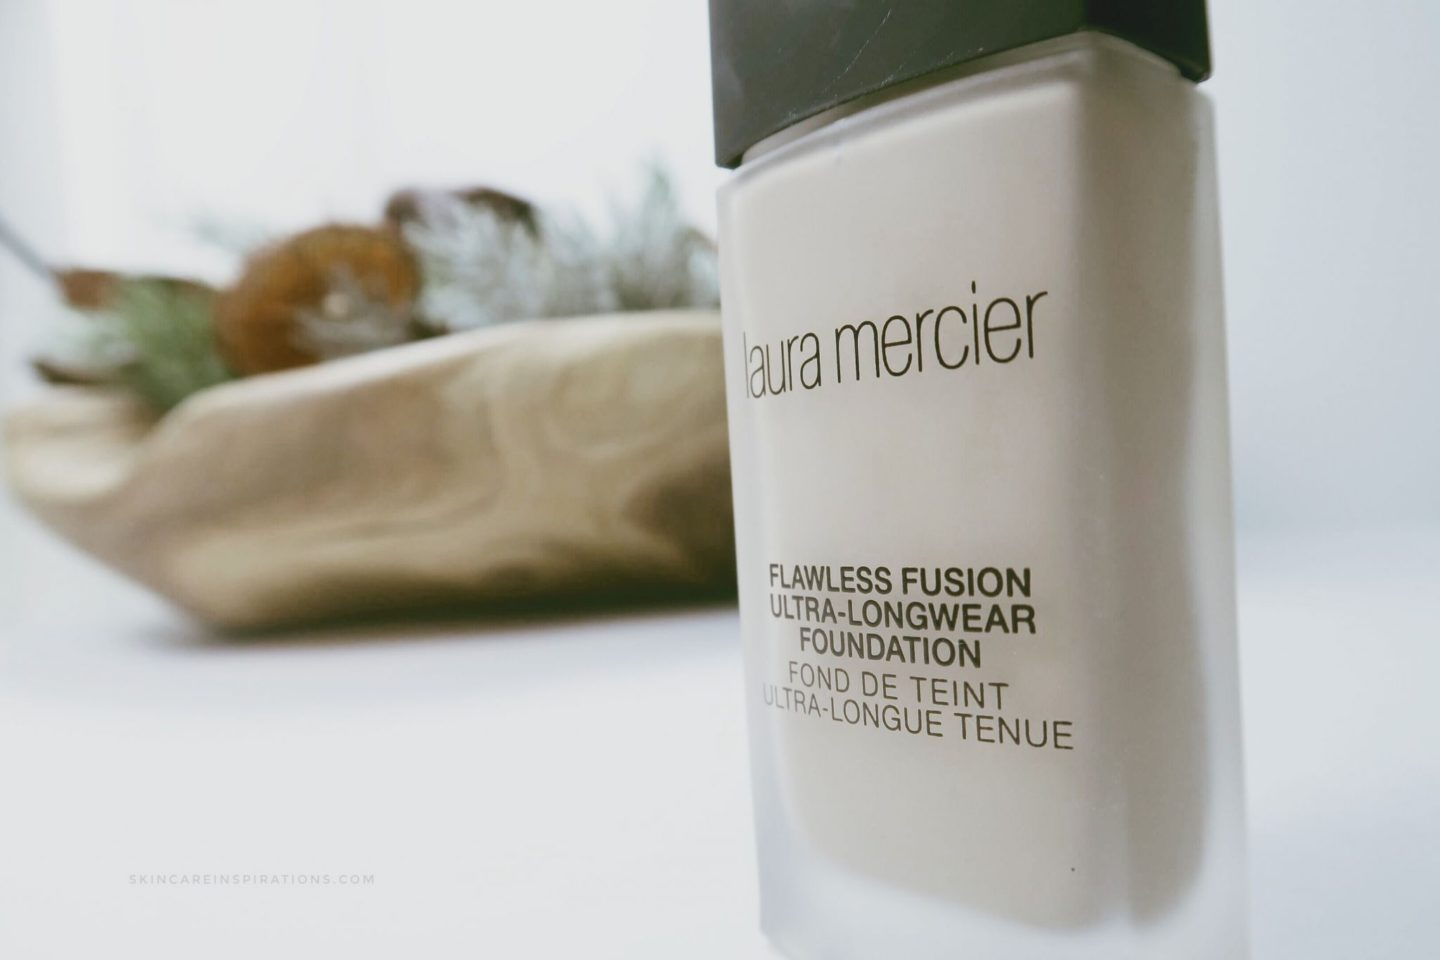 Laura Mercier Flawless Fusion Ultra Longer Foundation 3